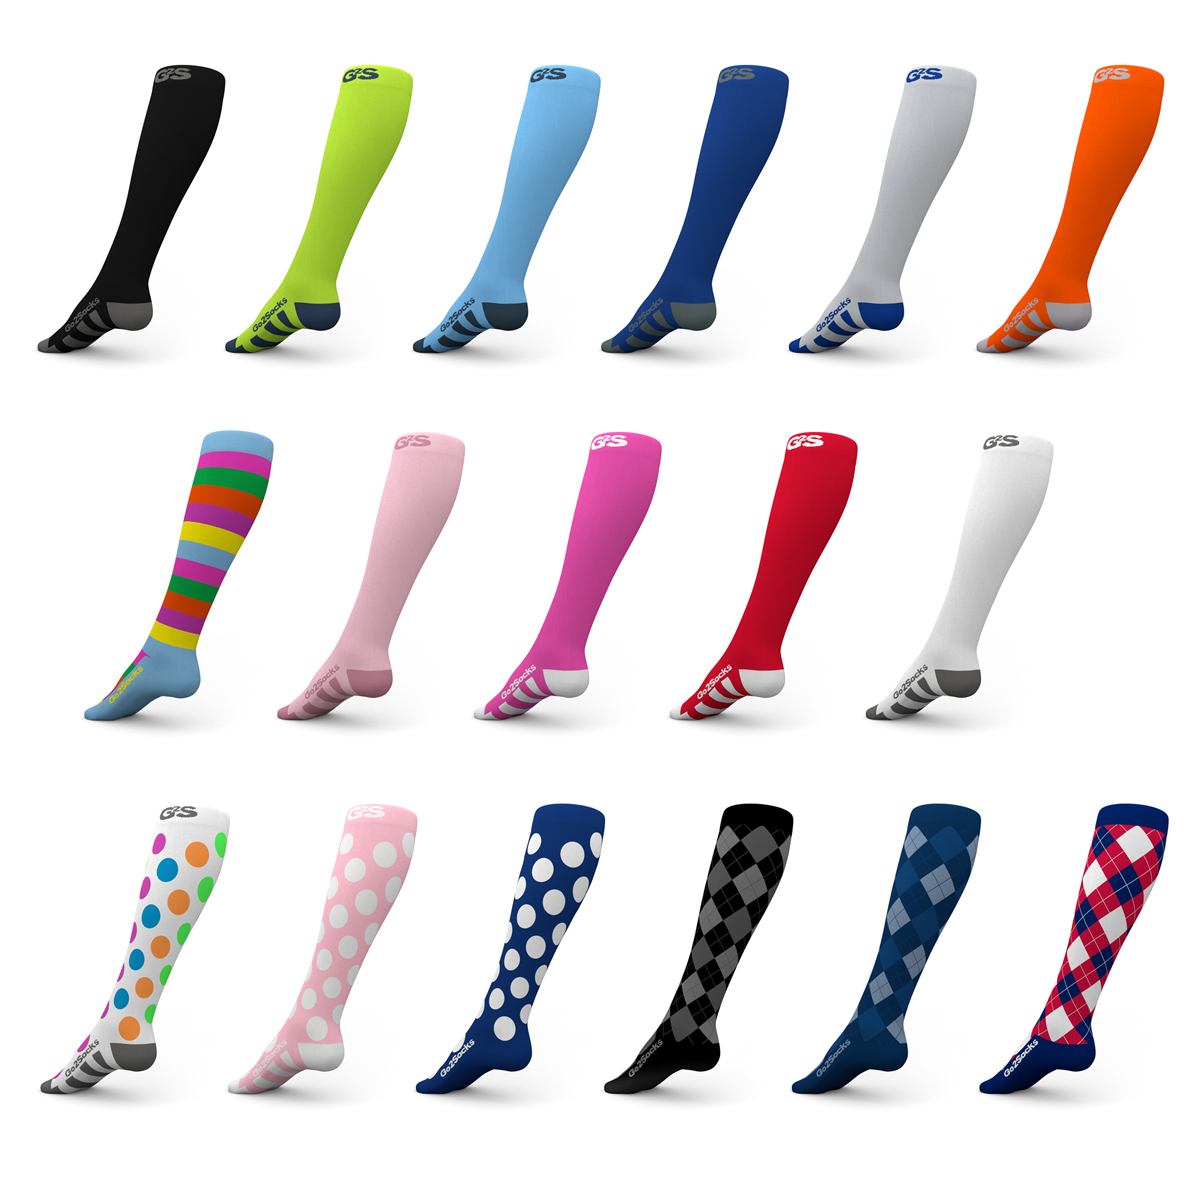 Go2 Compression Socks for Women and Men Athletic Running Socks for Nurses Medical Graduated Nursing Compression Socks for Travel Running Sports Socks!